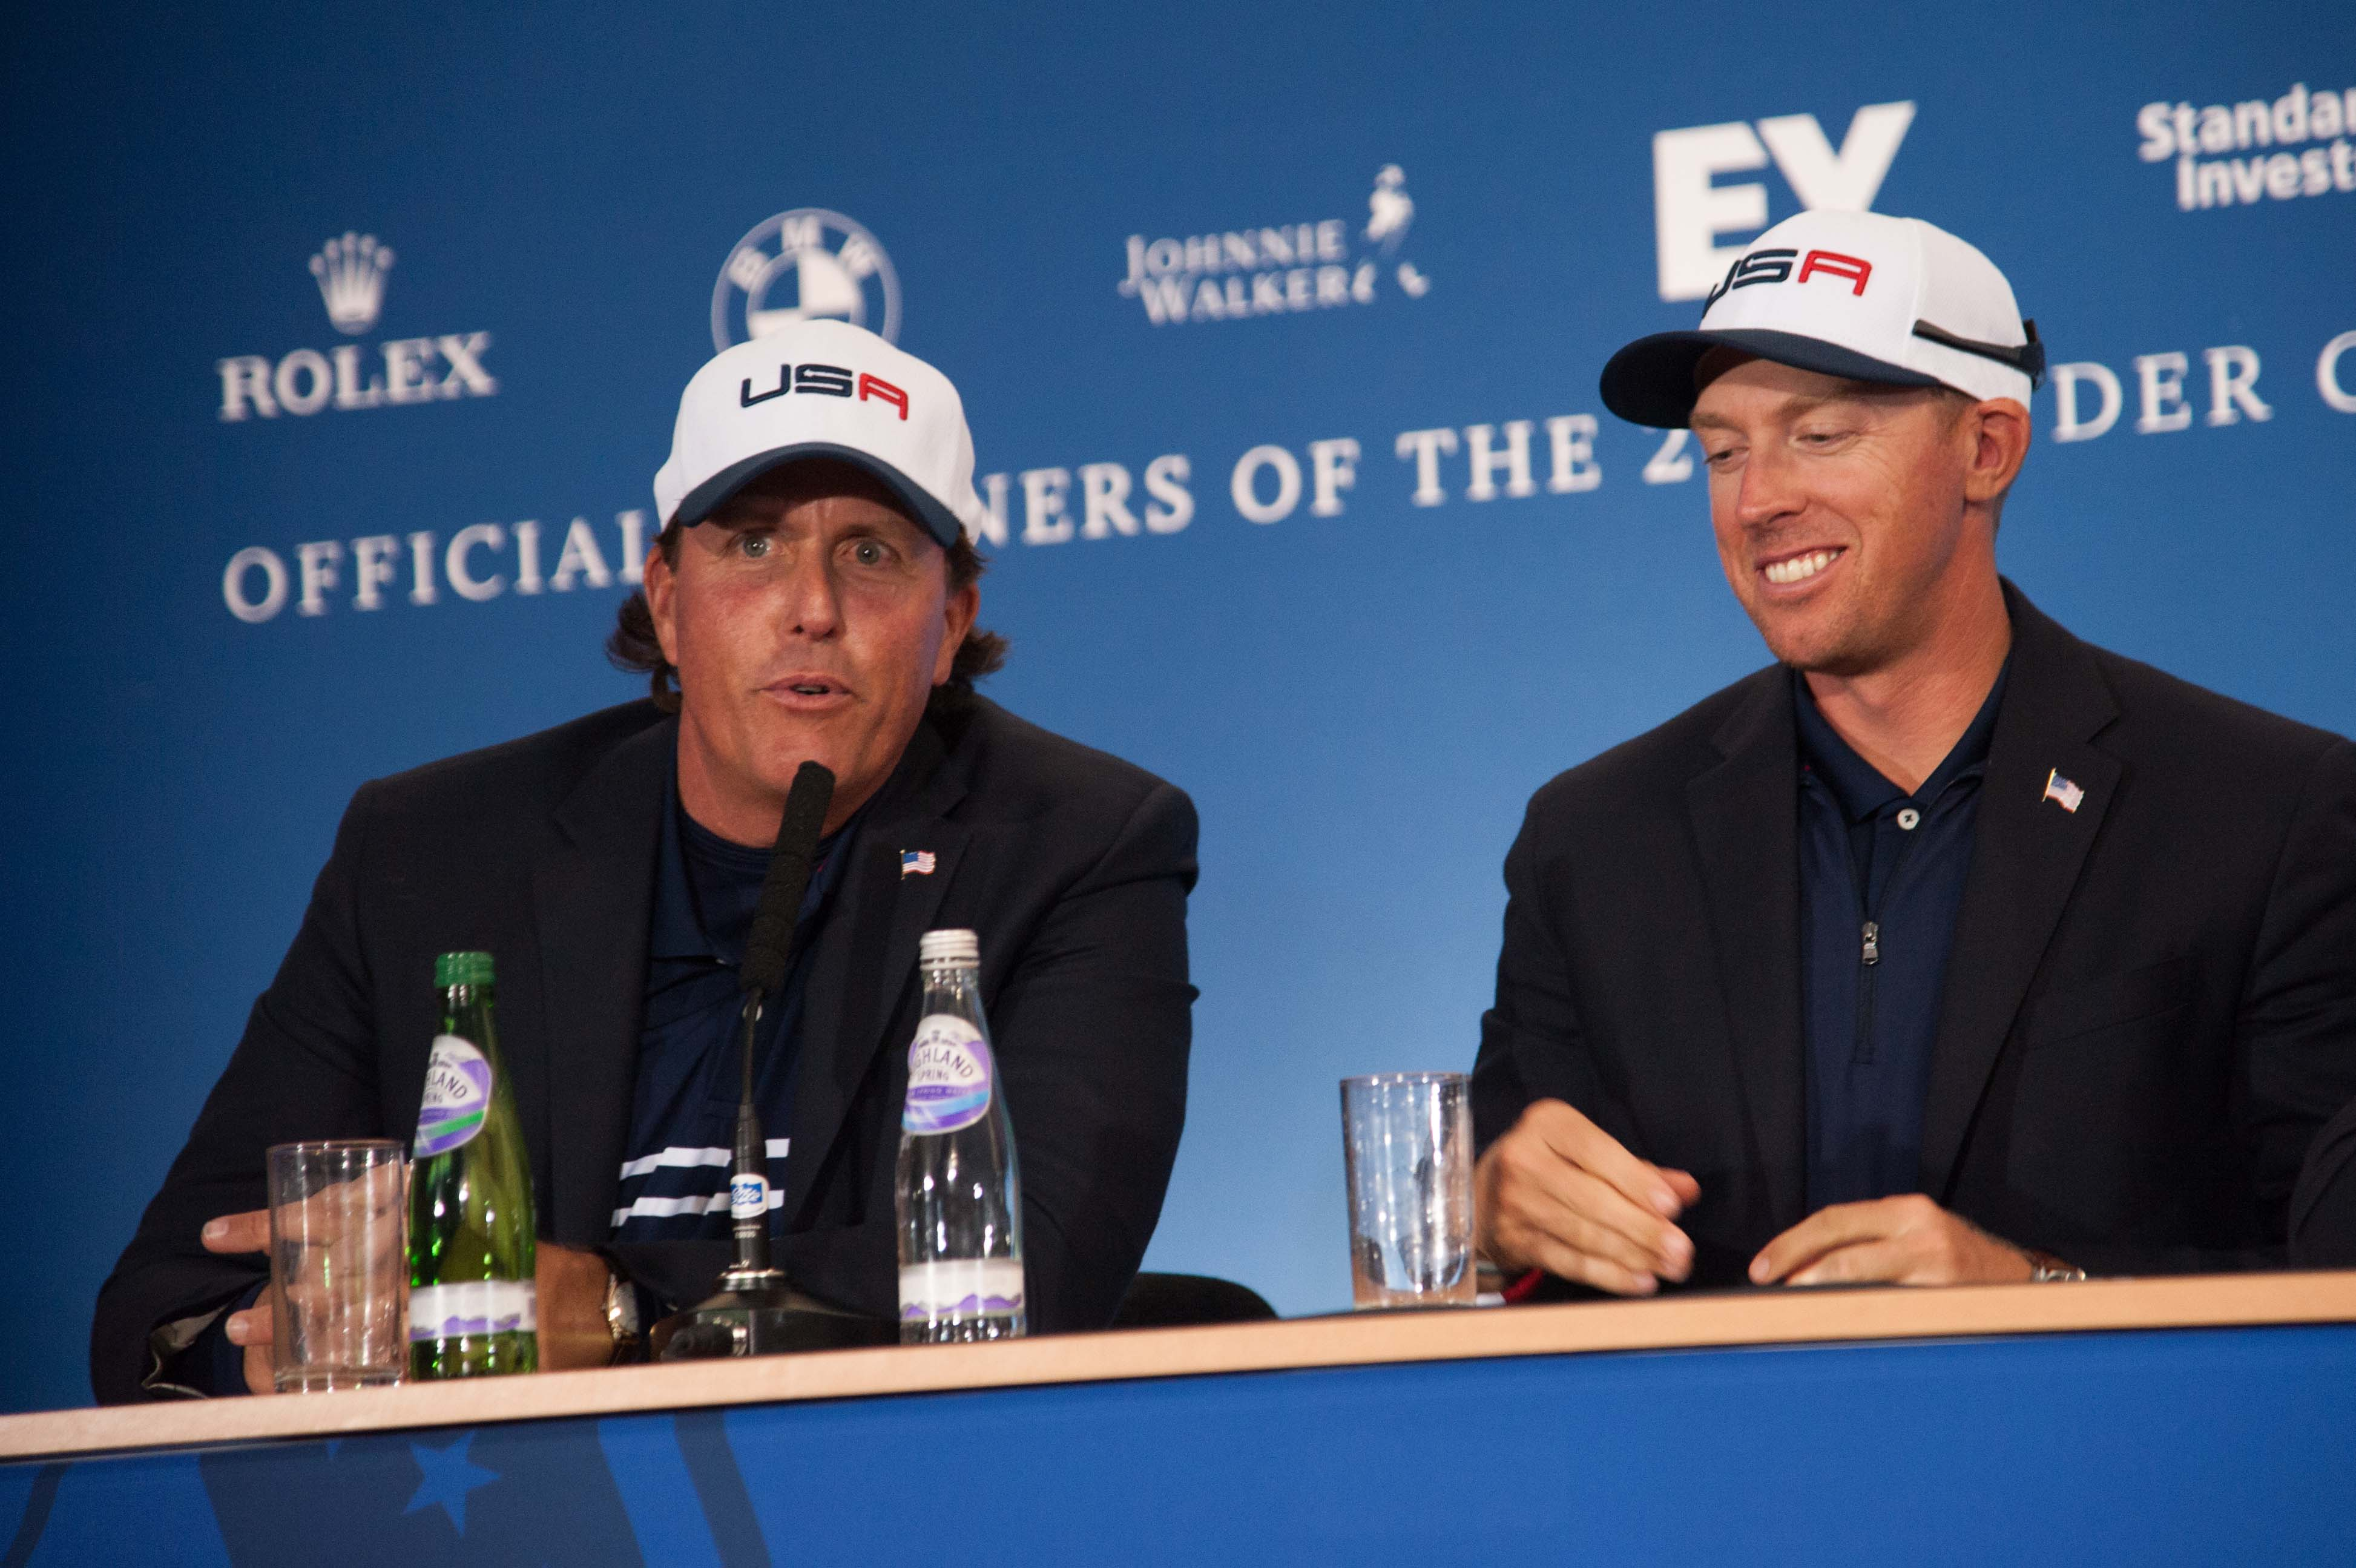 1. Mickelson's post-Ryder Cup news conference comments